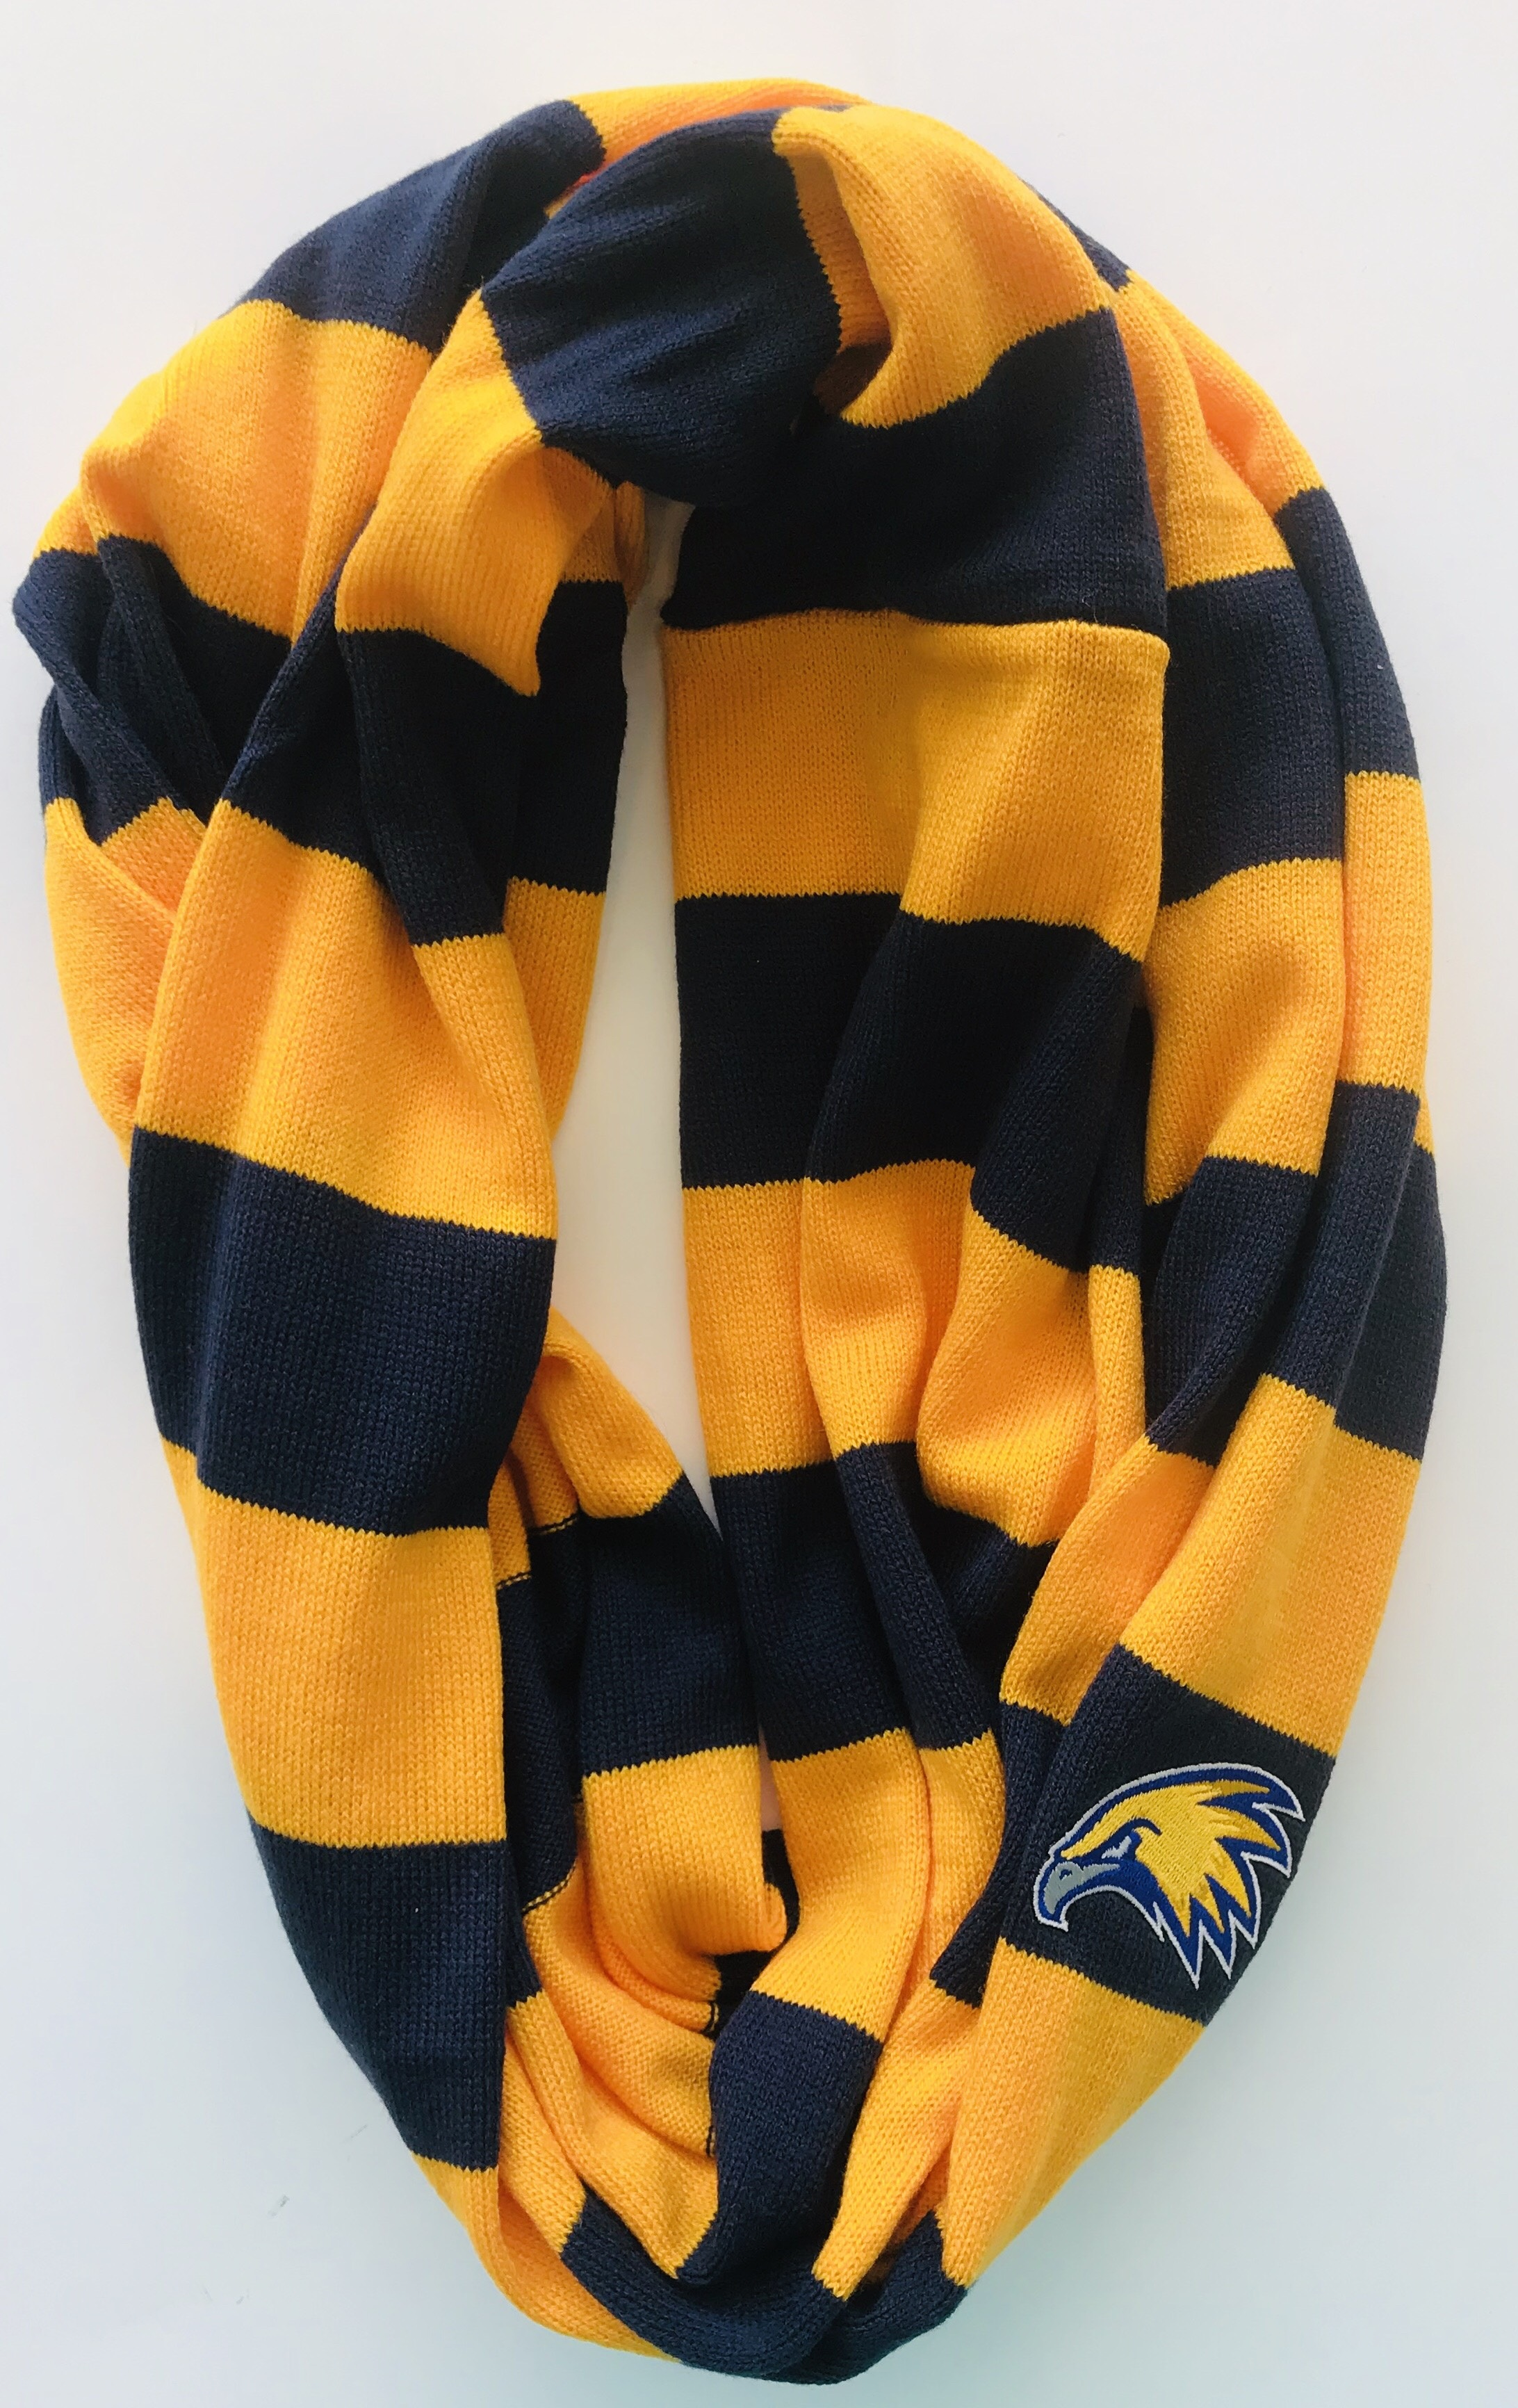 Golden Eagle Striped Infinity Scarf